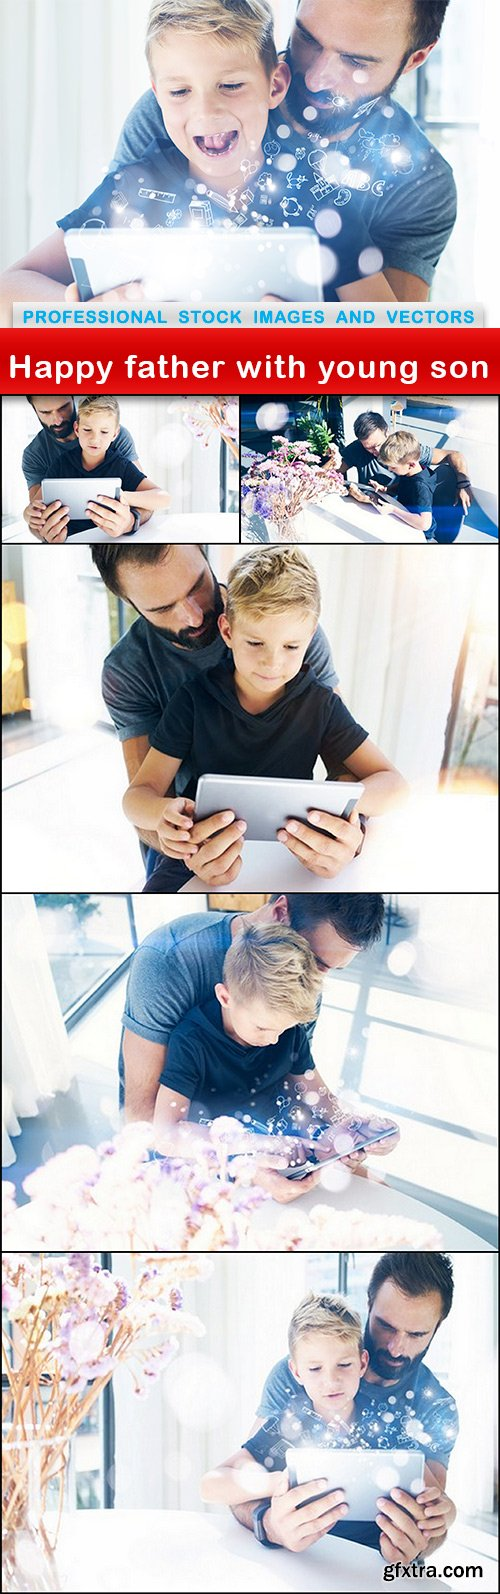 Happy father with young son - 6 UHQ JPEG